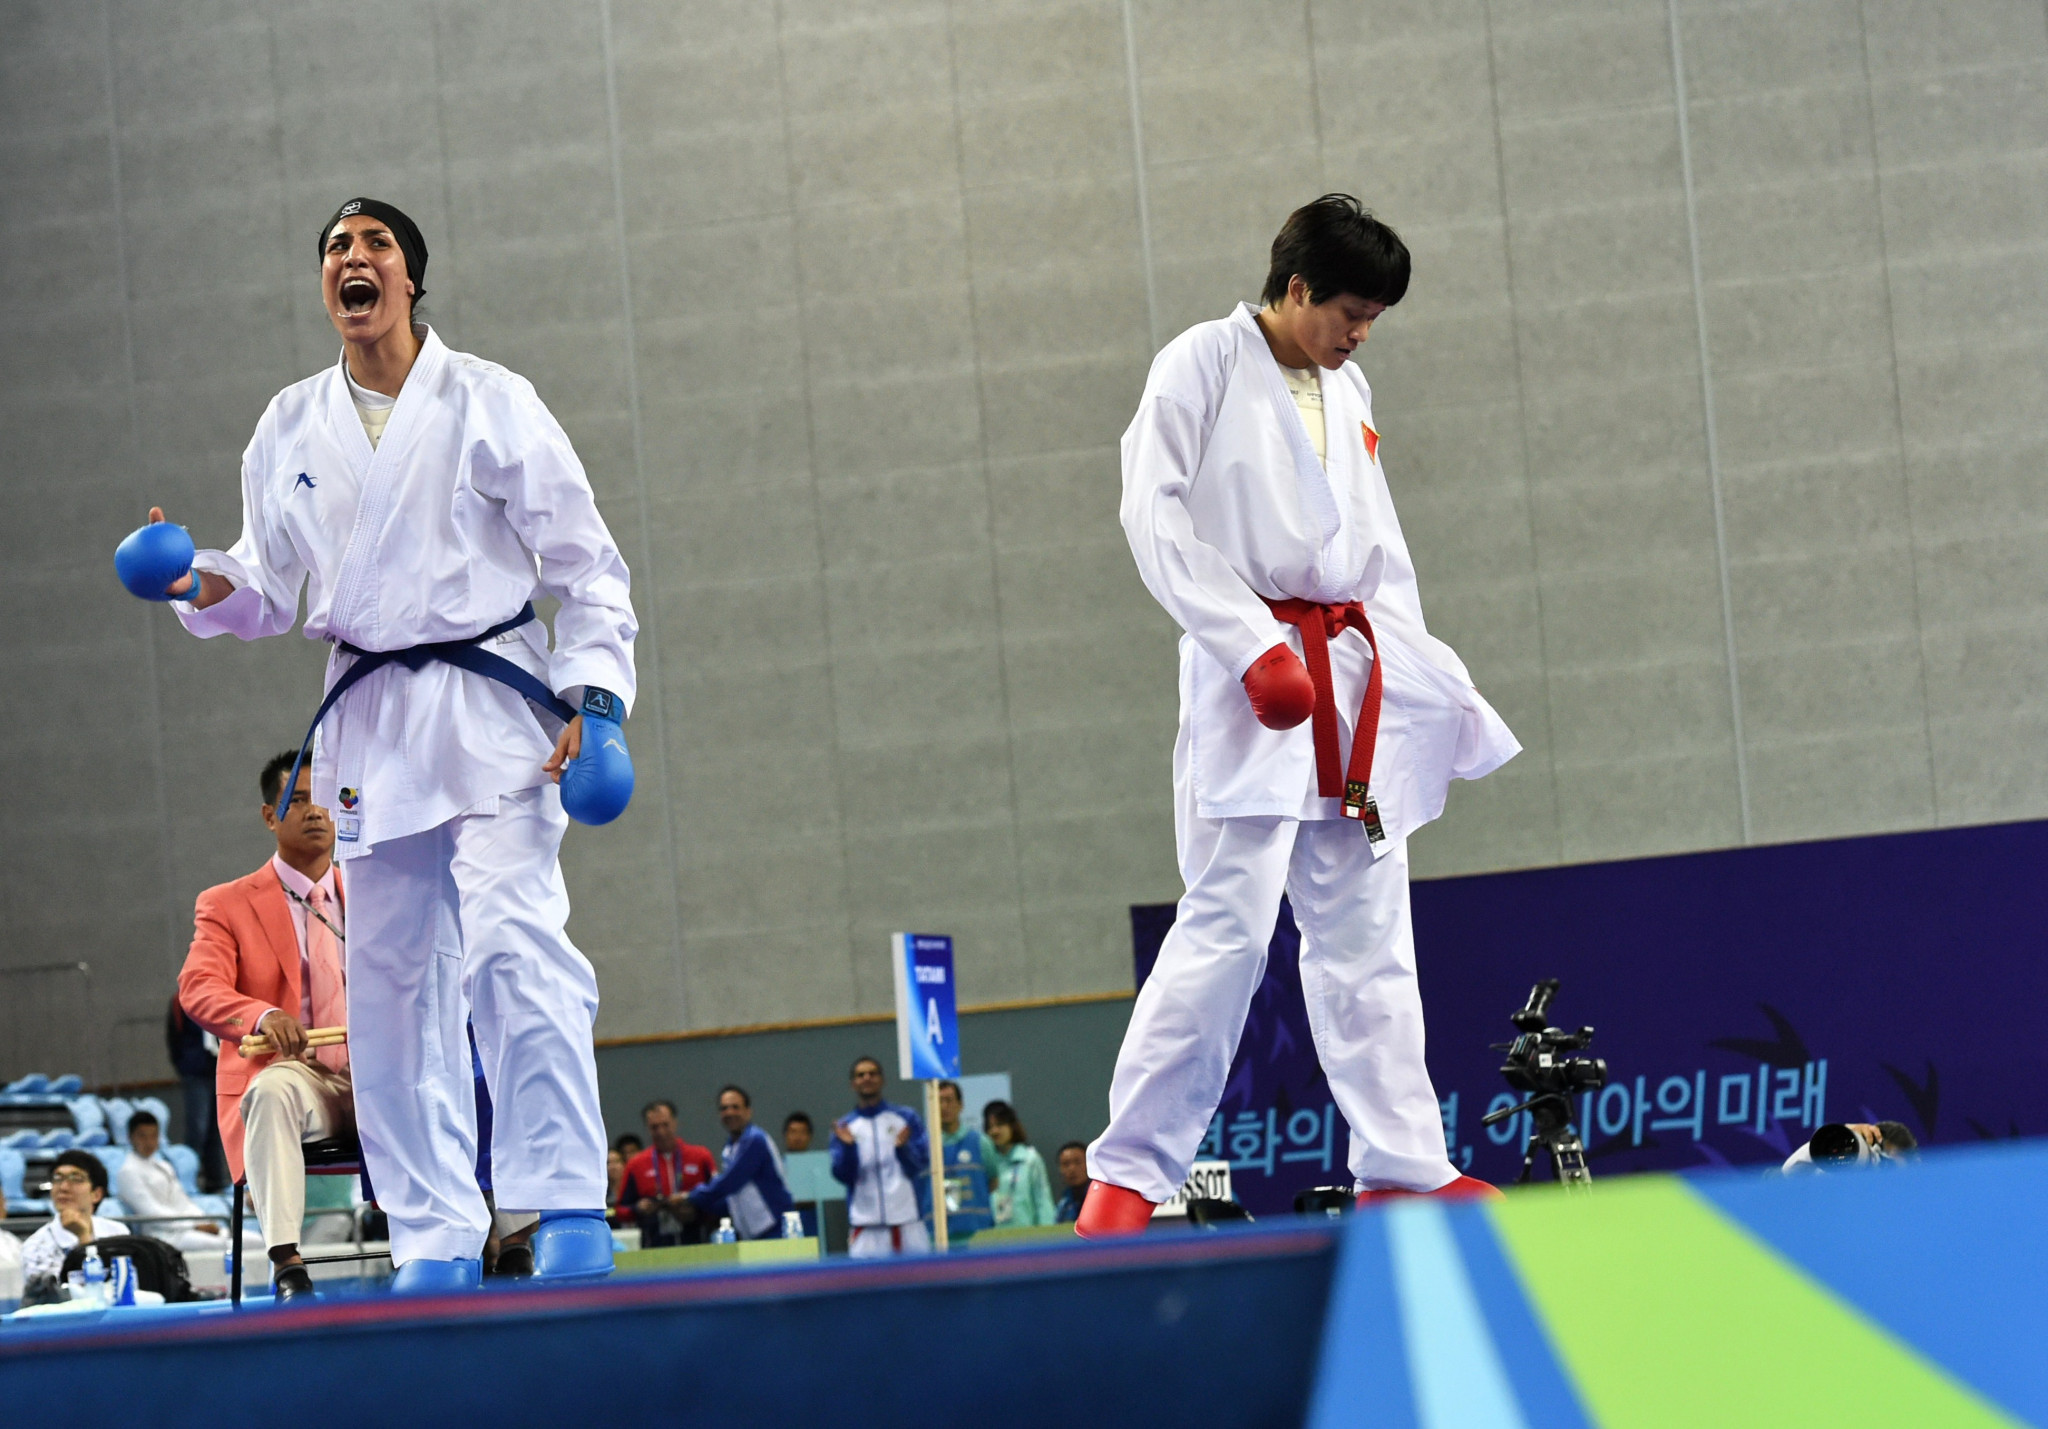 Karate star relishes extra year before Tokyo 2020 due to injury recovery